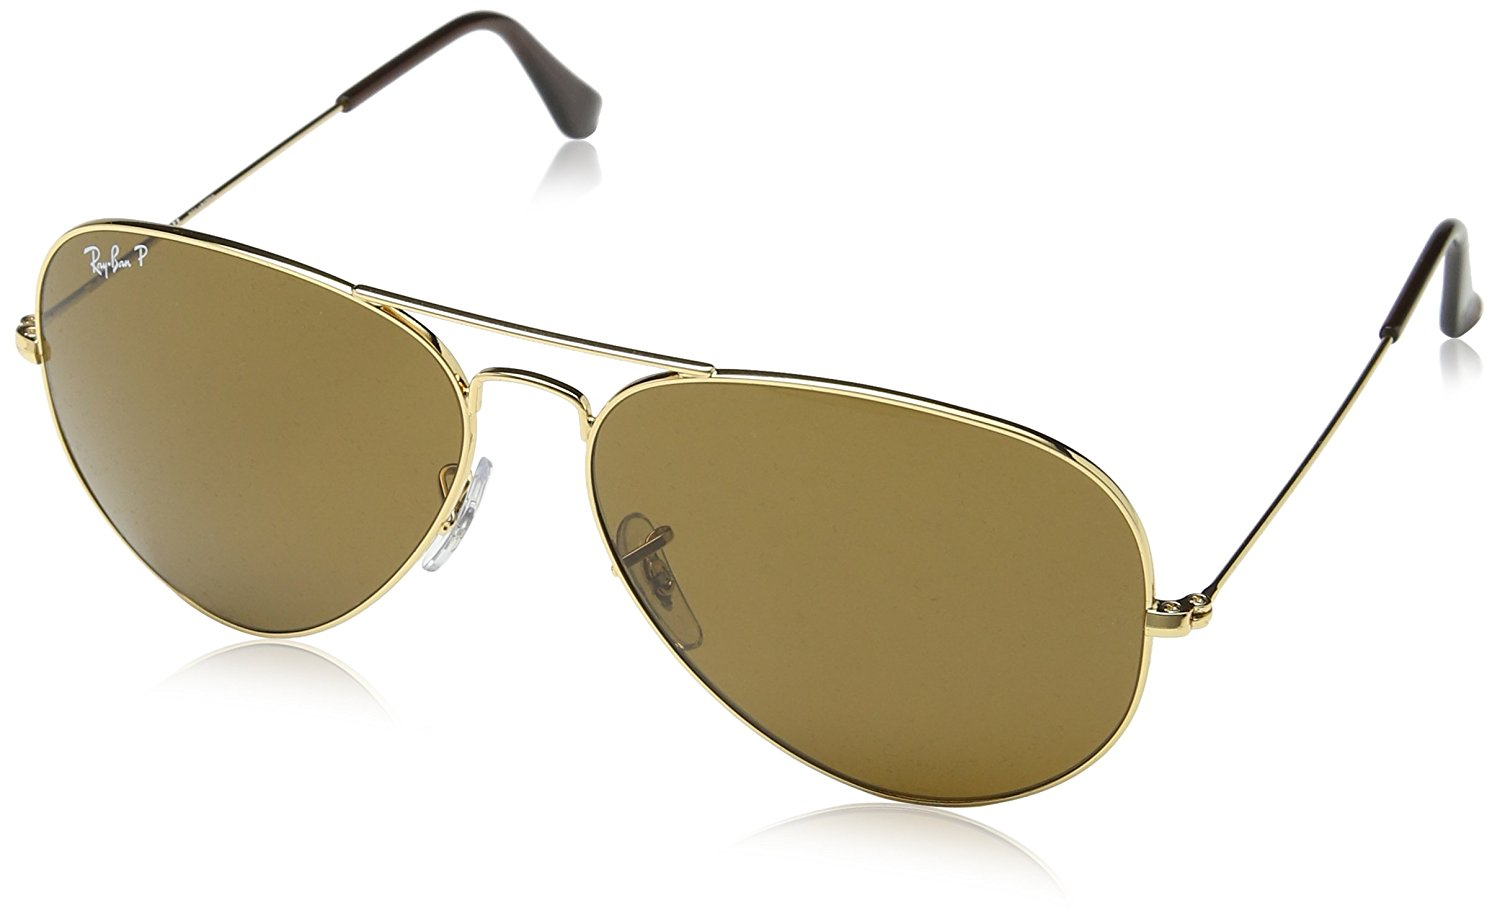 Ray-Ban Aviator Classic Gold Polarized Sunglasses - RB3025-001/57-62